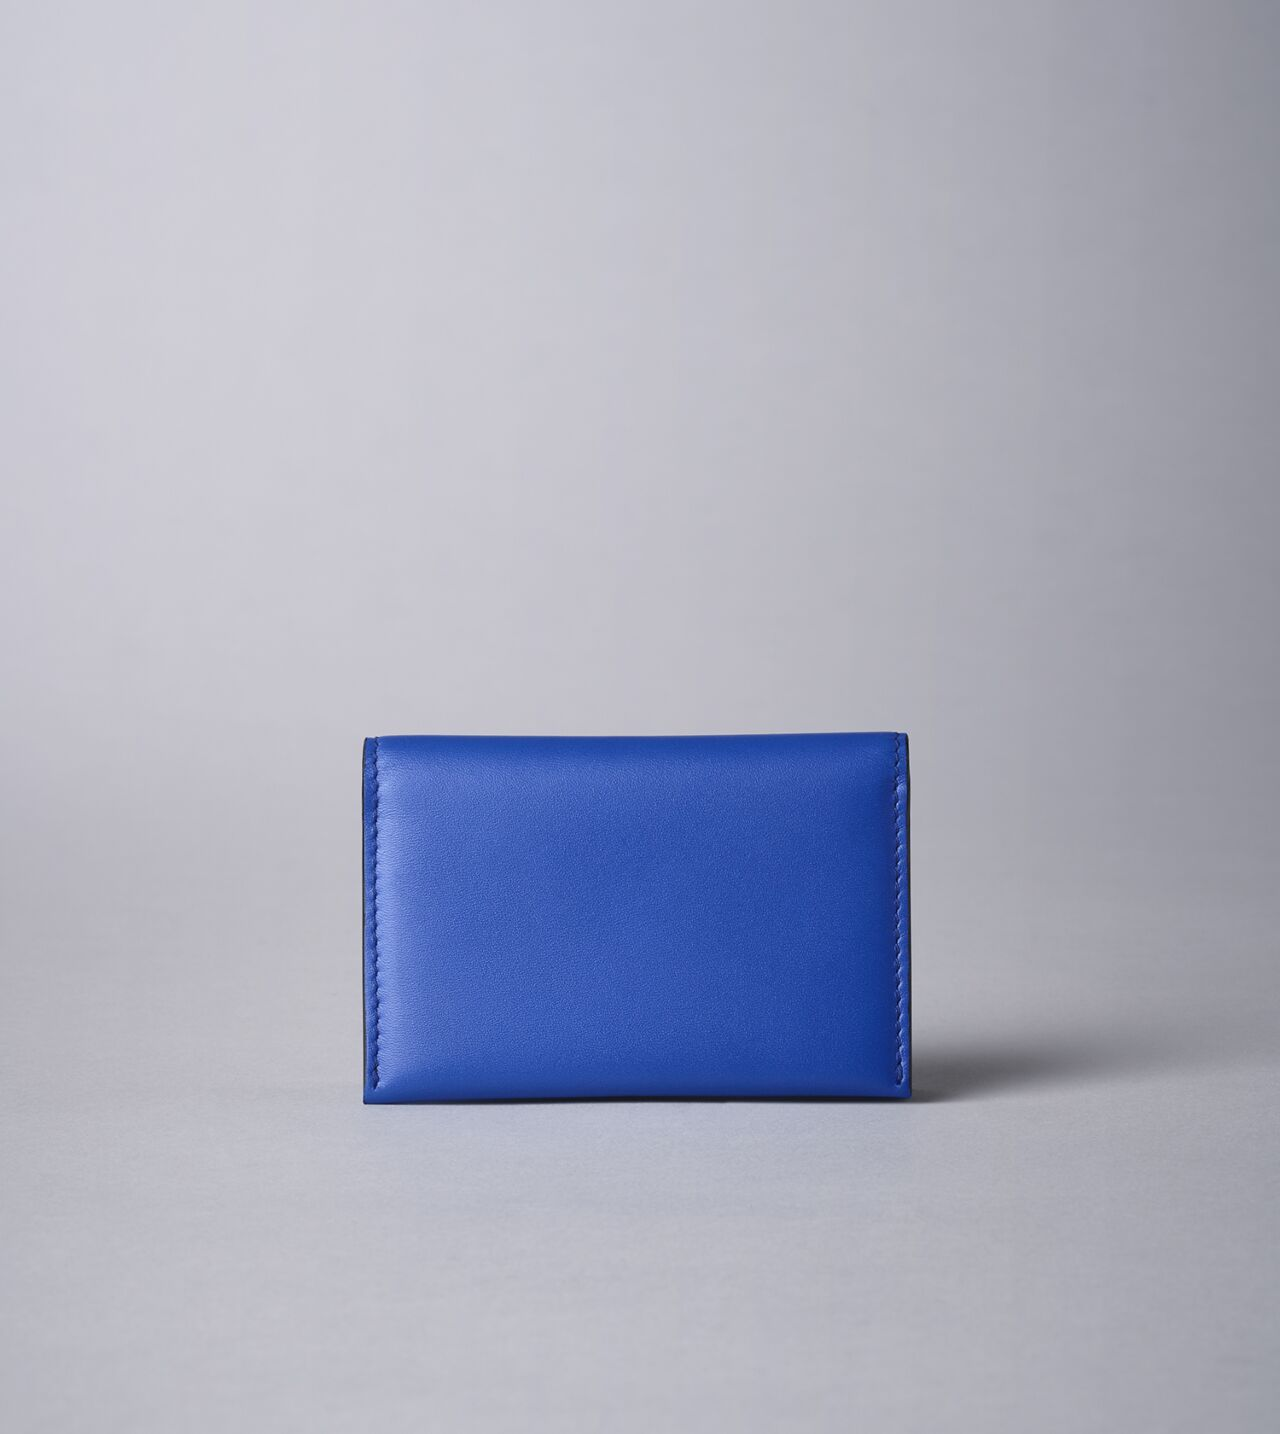 Picture of Byredo Business card holder in Blue leather